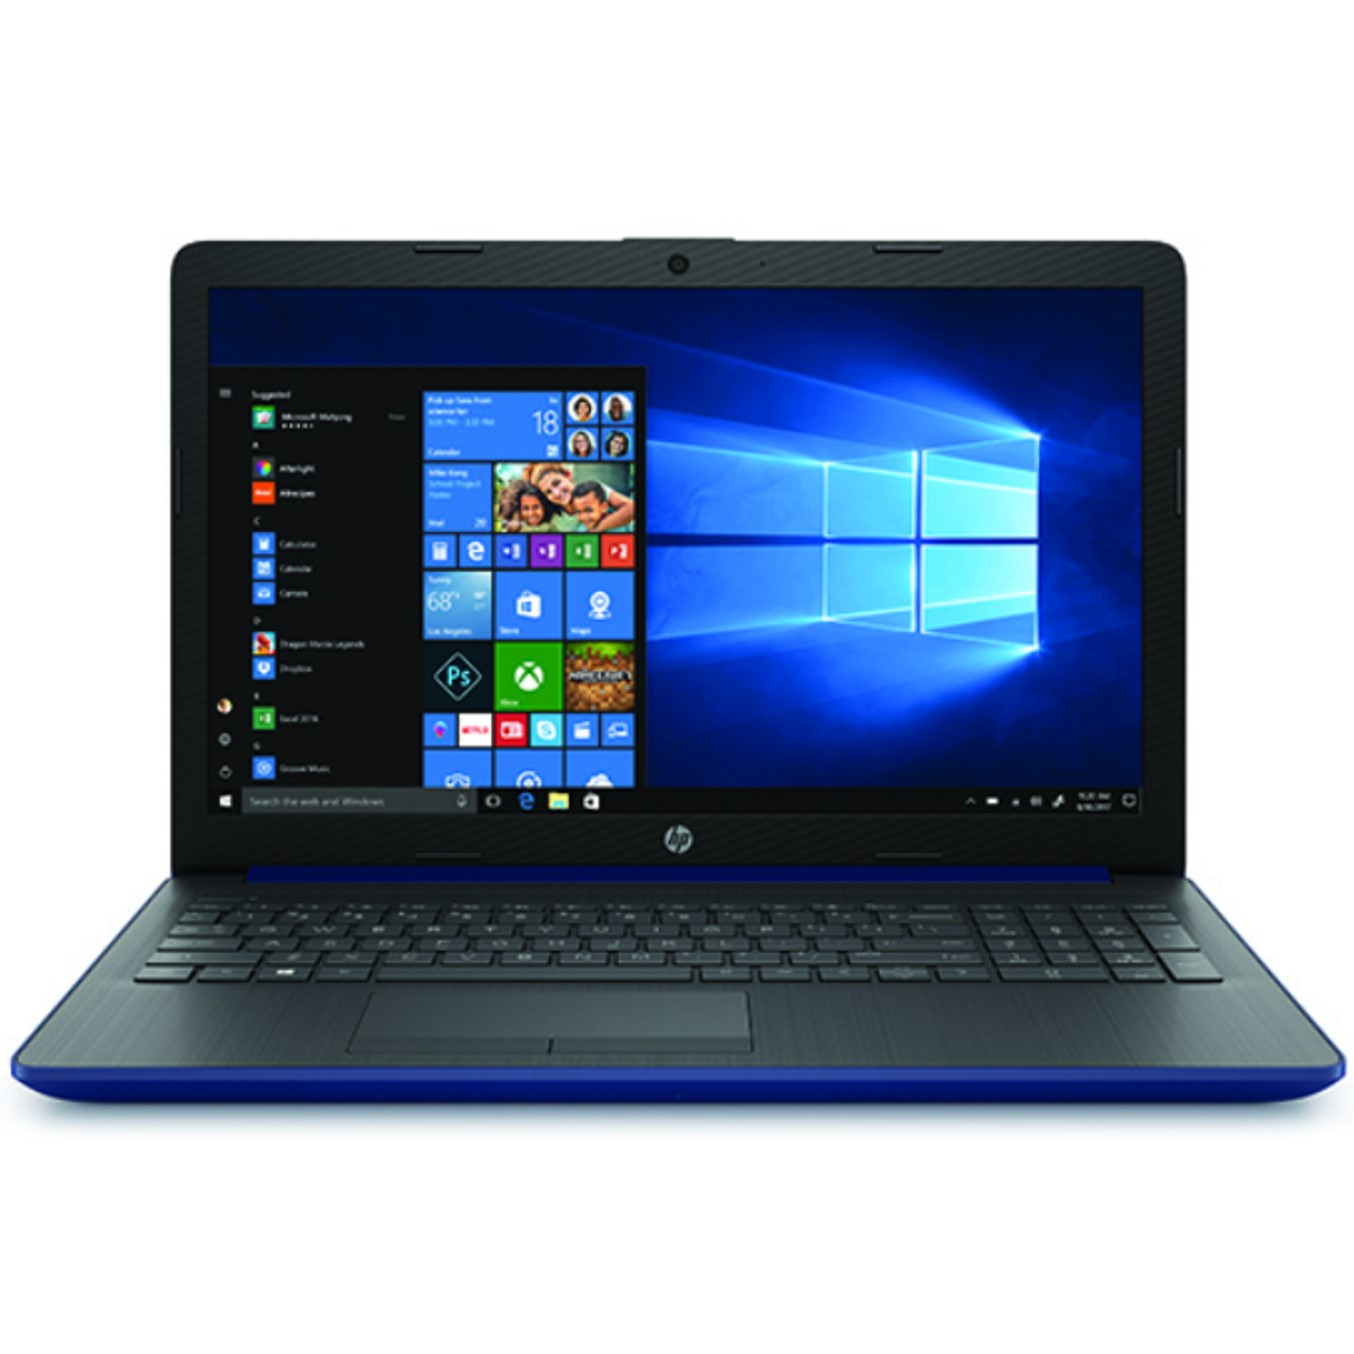 "PORTATIL HP NOTEBOOK 15-DA0236NS CELERON N4000 15.6"" 4GB / SSD128GB / WIFI / BT / W10"